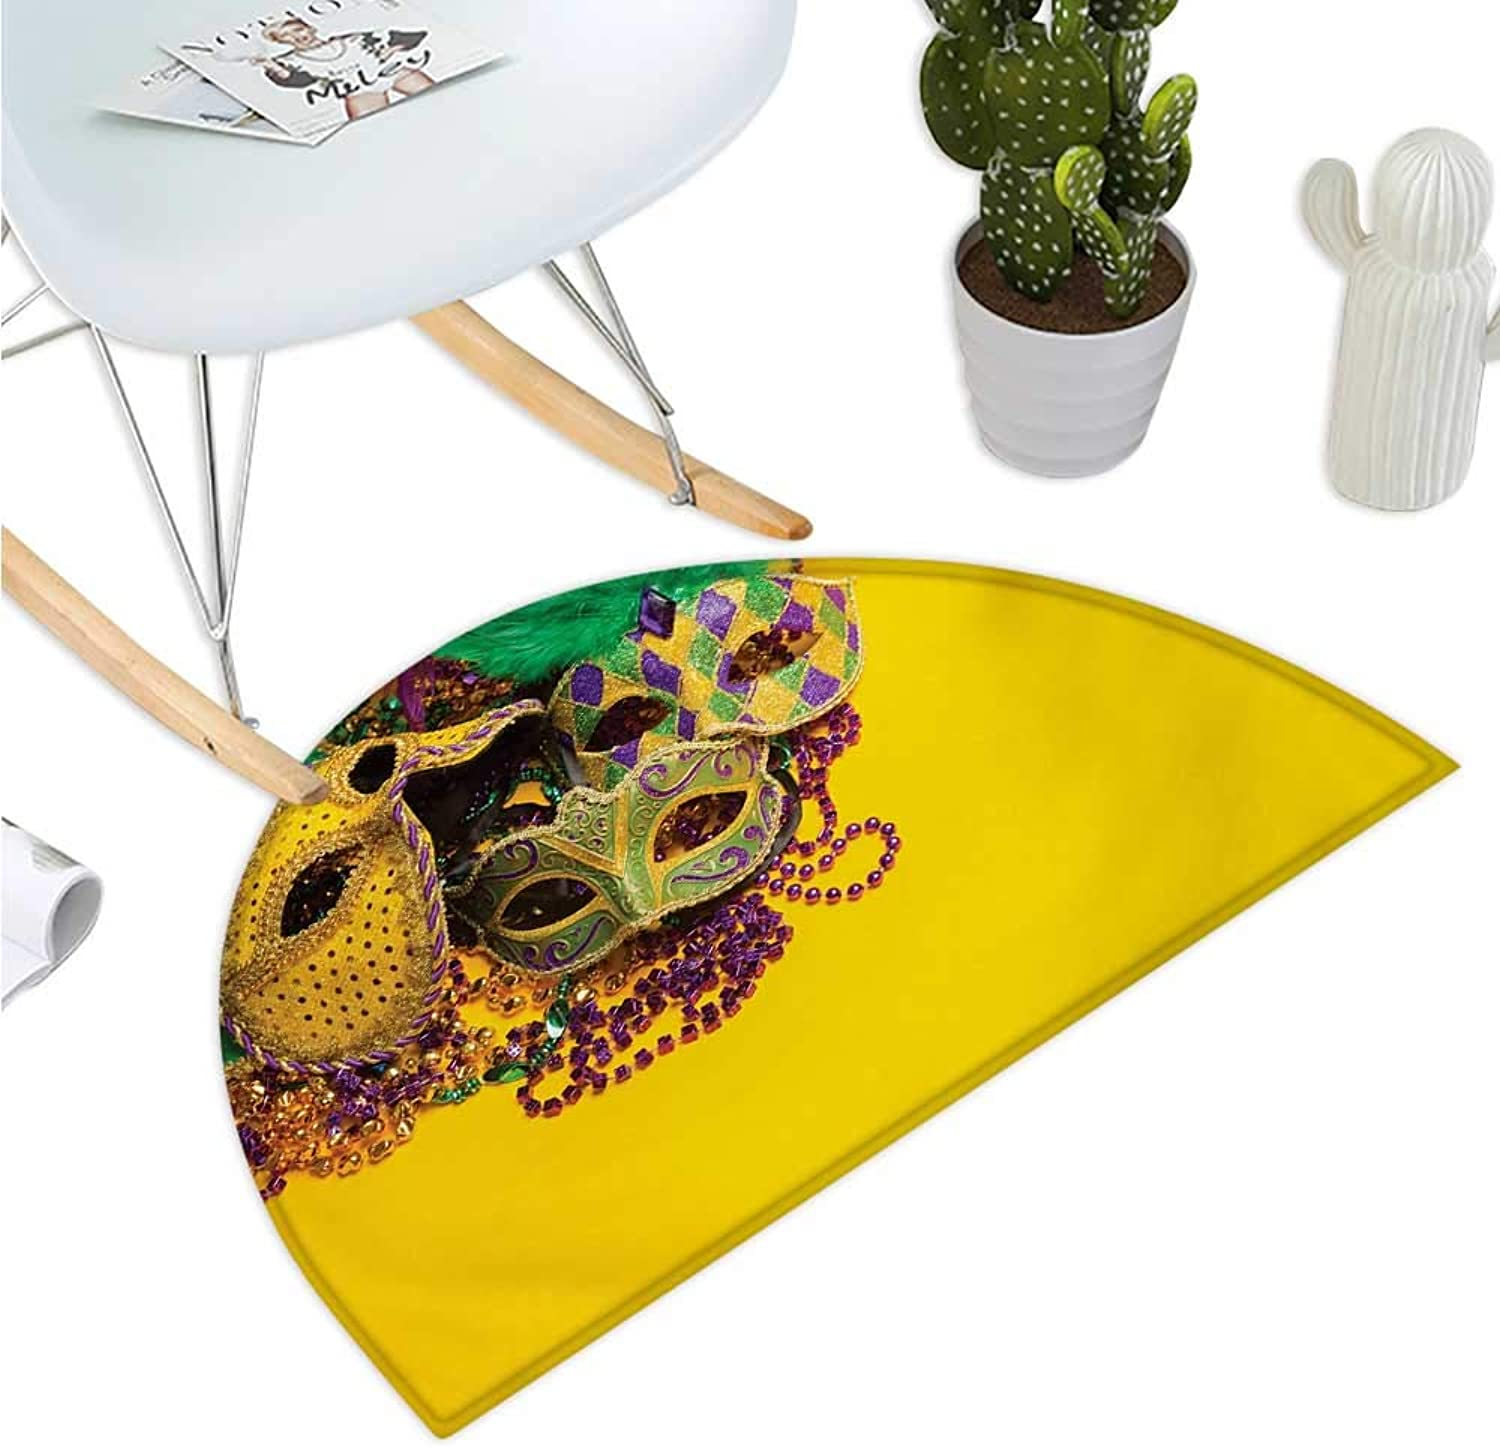 Mardi Gras Semicircle Doormat Festive and colorful Group of Venetian Carnival Masks and Accessories Halfmoon doormats H 47.2  xD 70.8  Yellow Purple Green